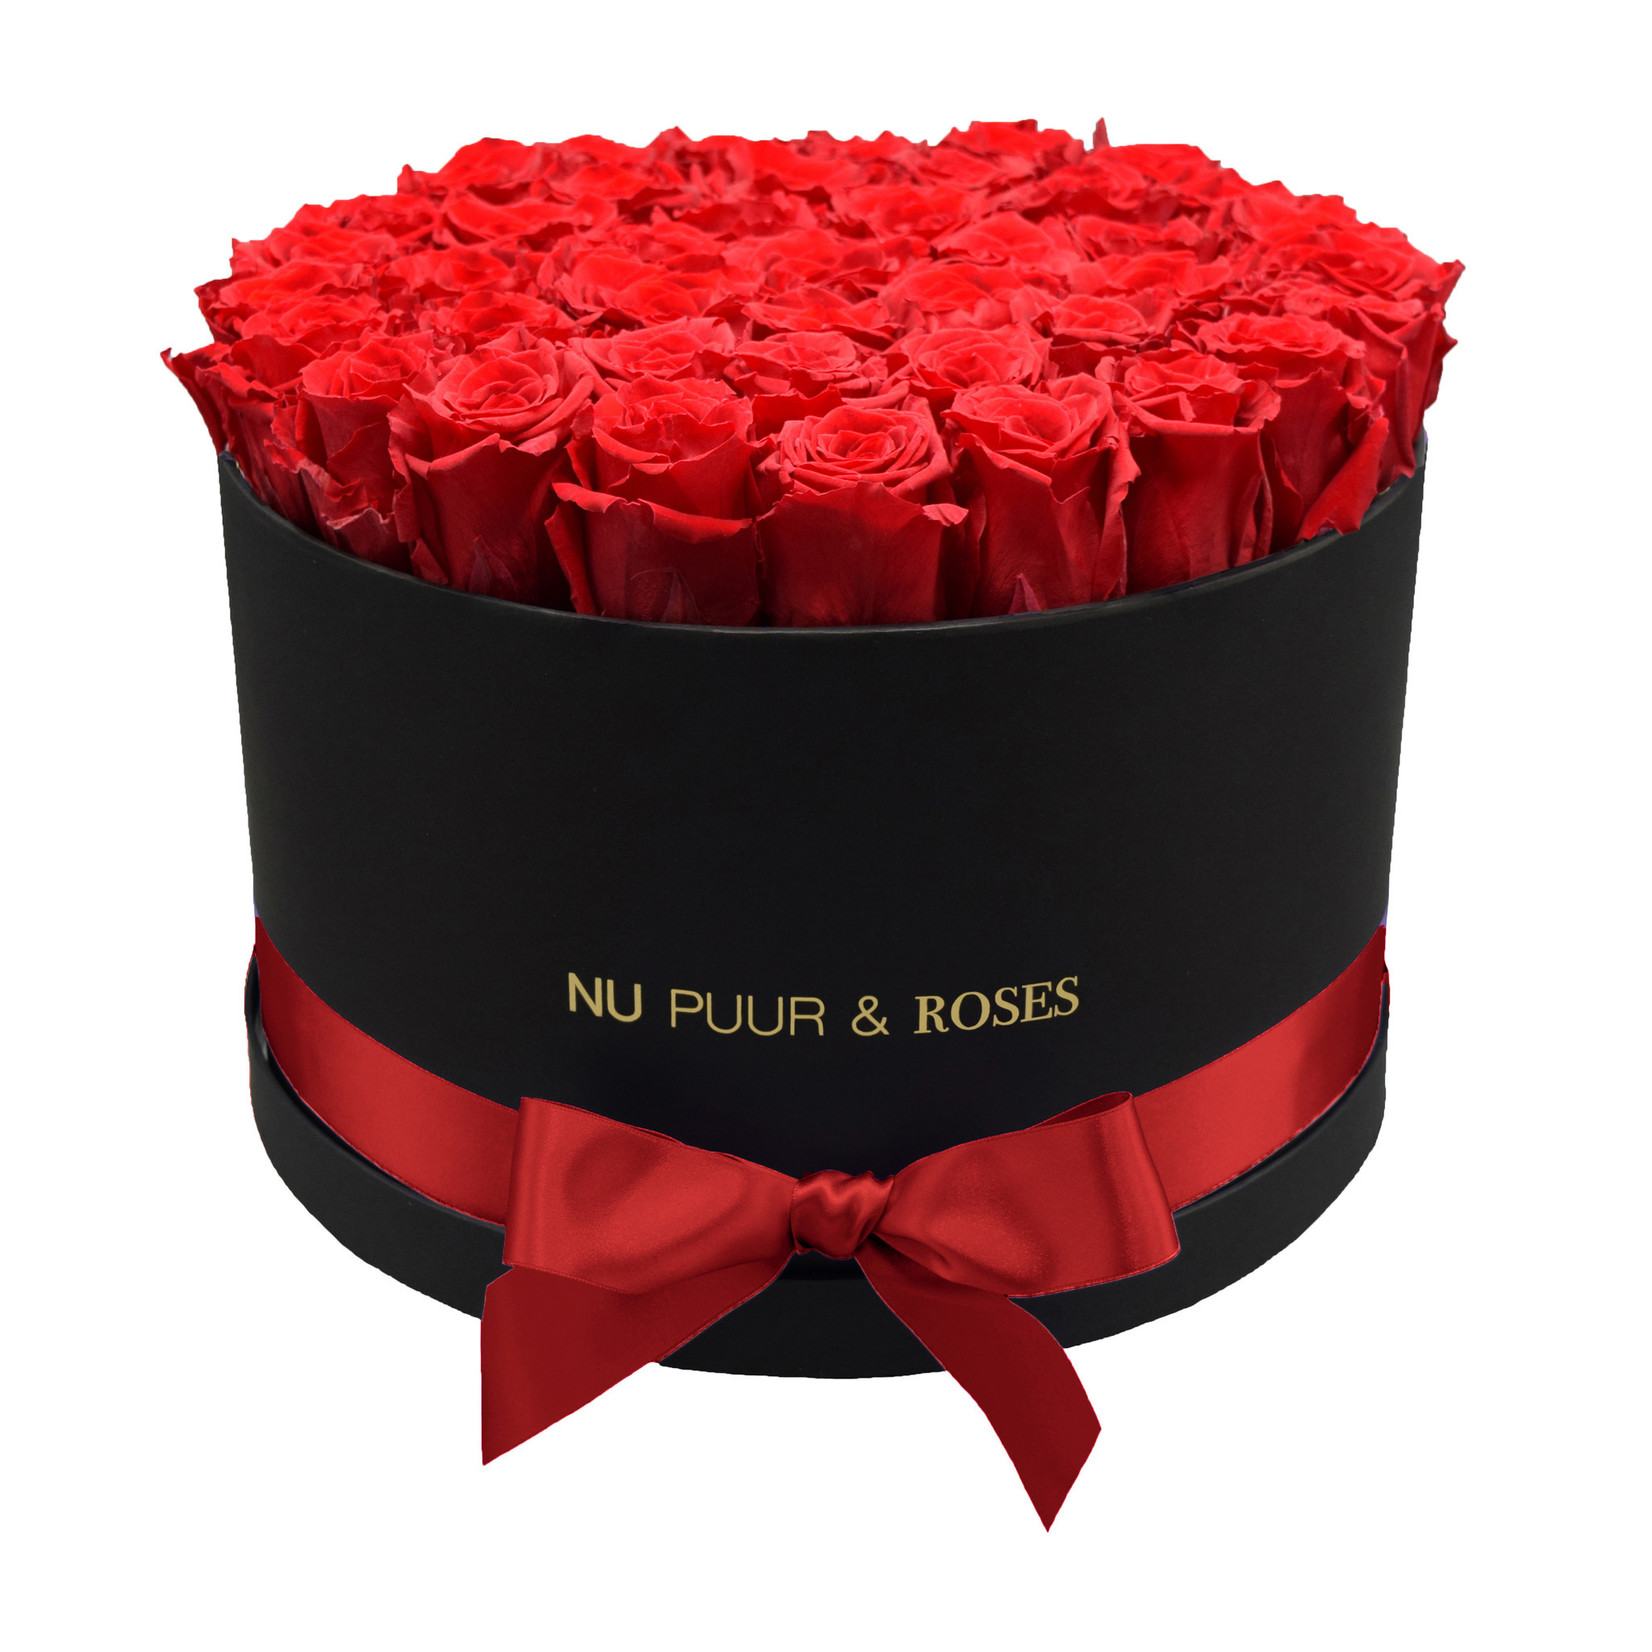 Extra Large - Red Endless Roses - Black Box